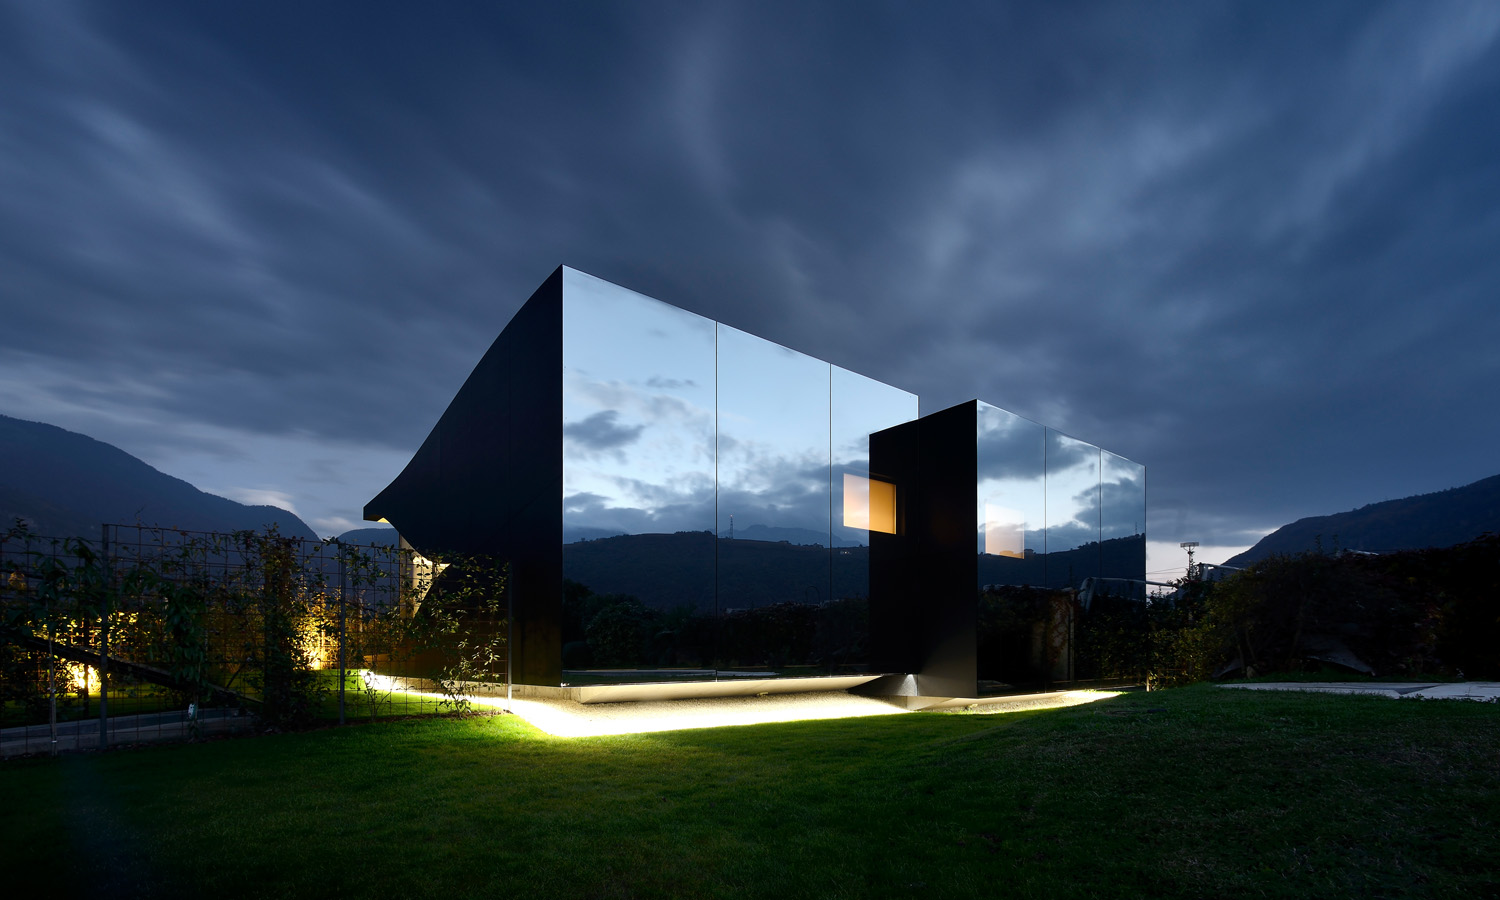 Mirror Houses by night